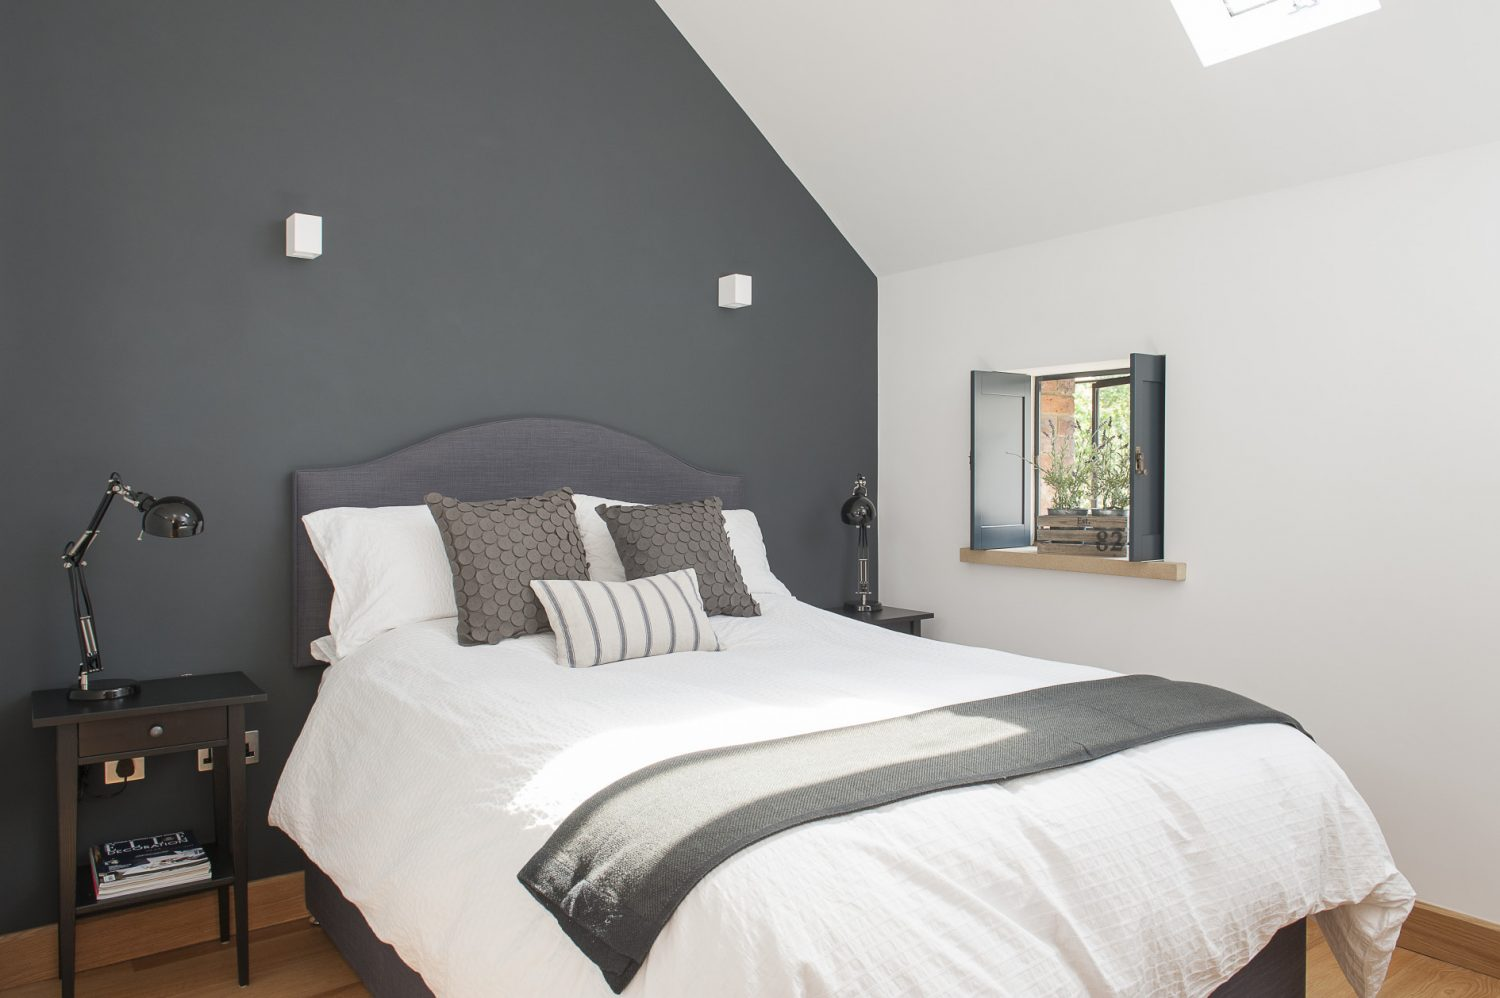 The second guest room, painted a deep grey, is a pleasing combination of contemporary minimalism with a dash of country charm – the latter provided by a pretty shuttered window